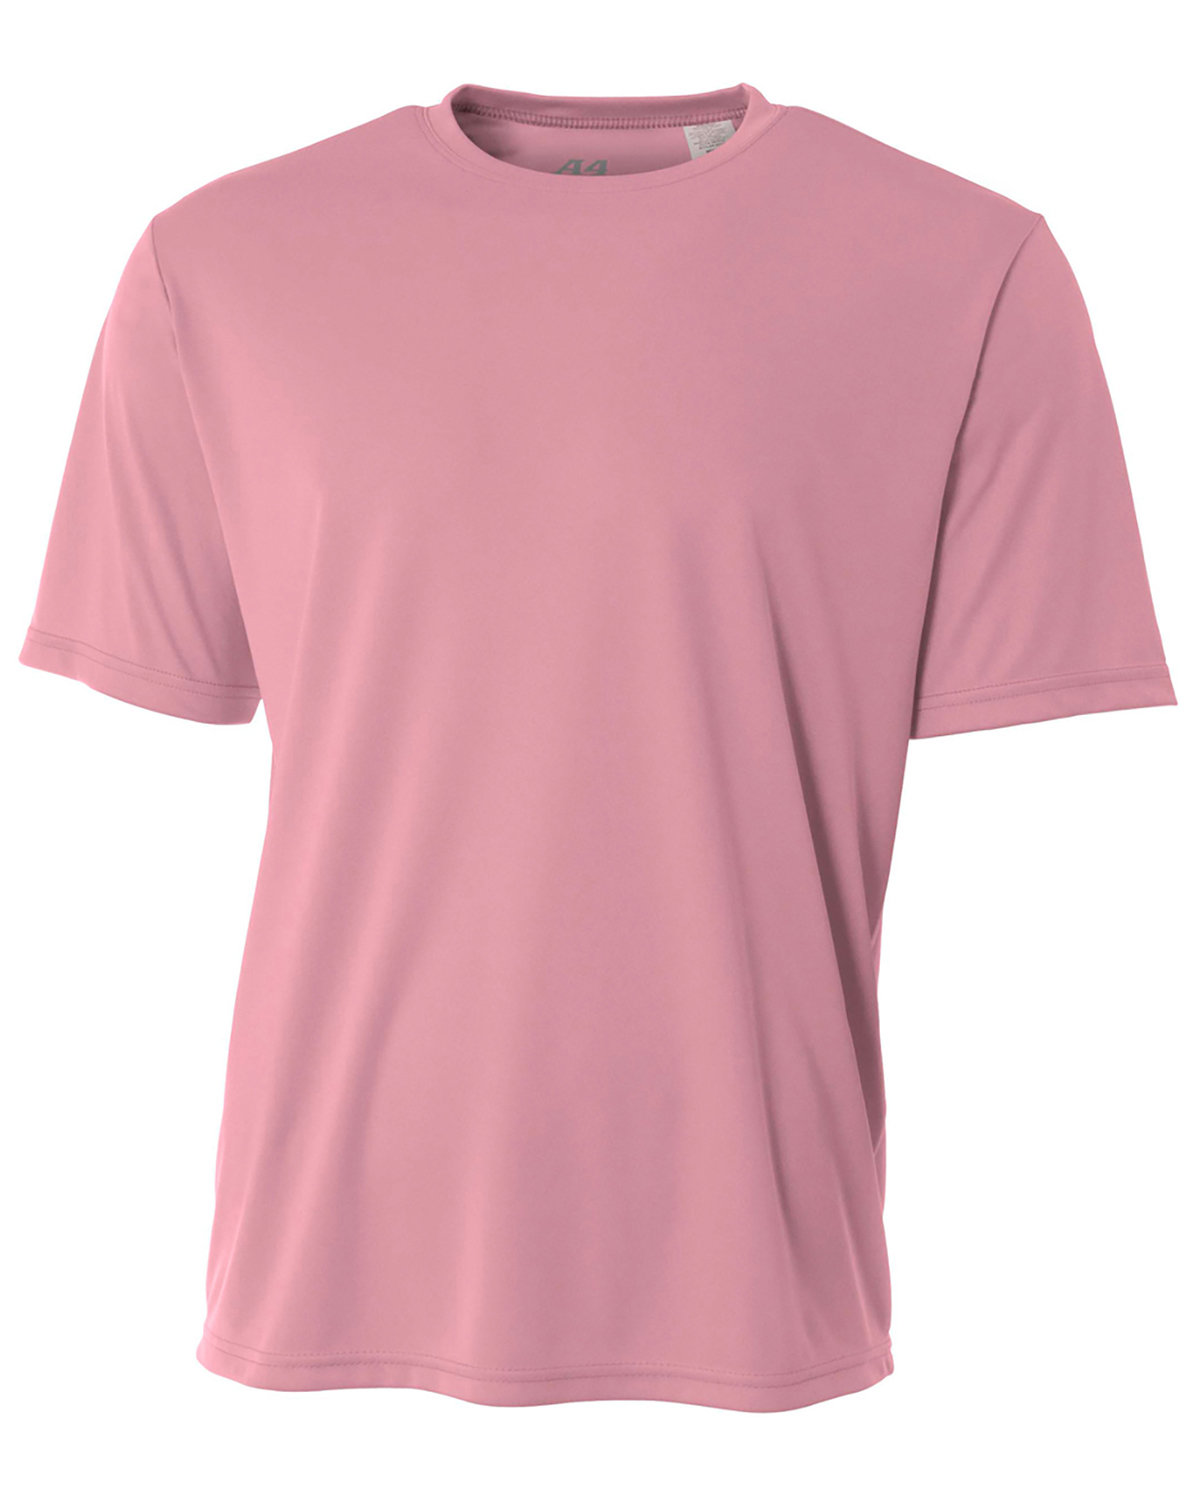 A4 Youth Cooling Performance T-Shirt PINK